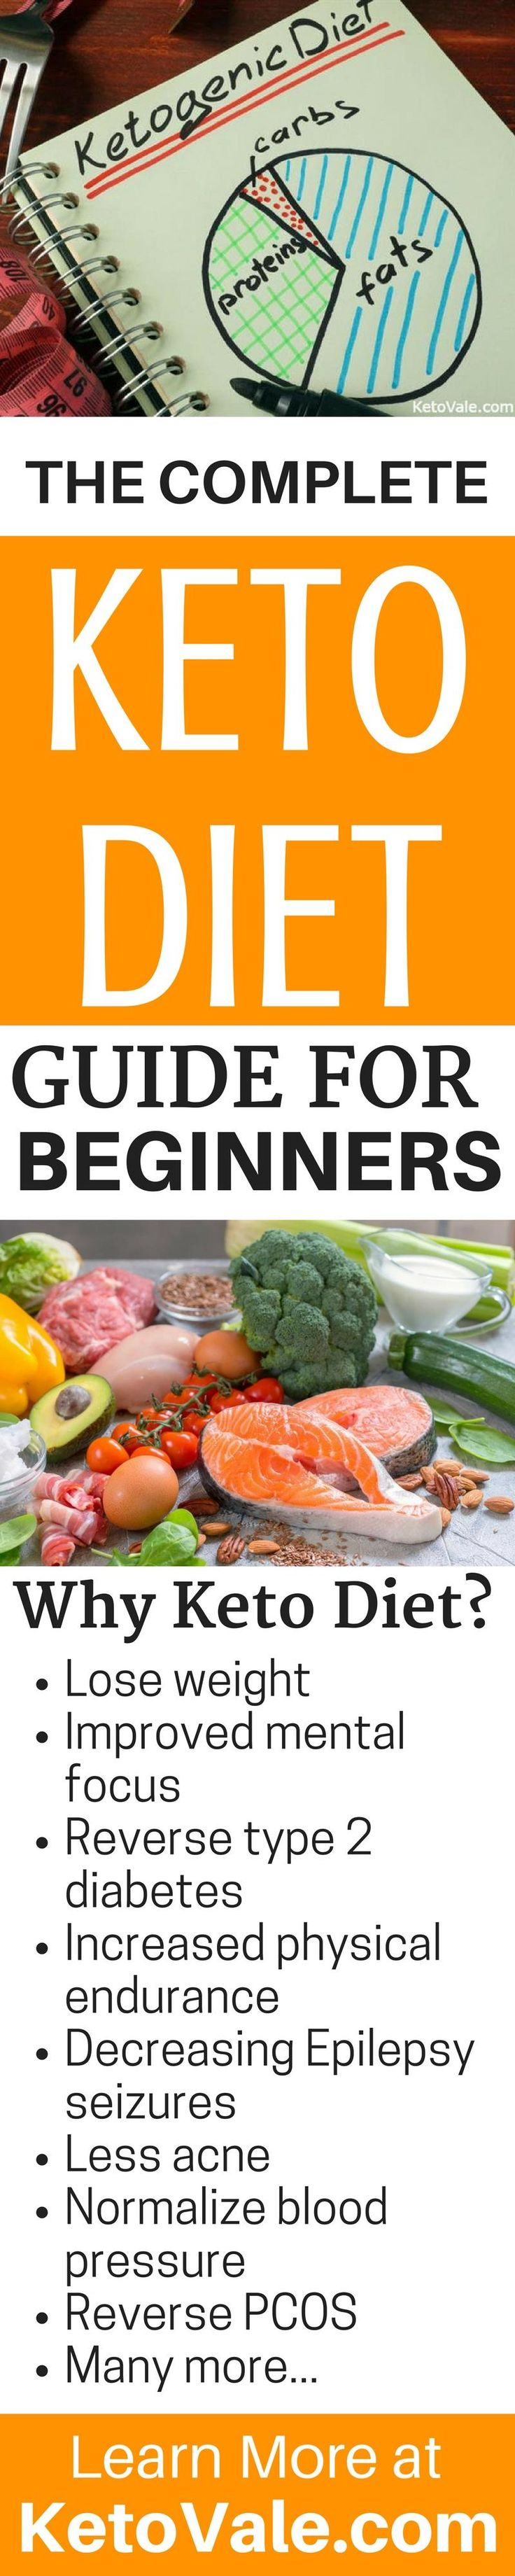 There are many reasons why you should follow the ketogenic diet. This Complete Keto Diet Guide For Beginners will explain all the benefits including Lose weight, Improved mental focus, Reverse type 2 diabetes, Increased physical endurance, Decreasing Epilepsy seizures, Less acne, Normalize blood pressure, Reverse PCOS and many other benefits. Read it at https://www.ketovale.com/